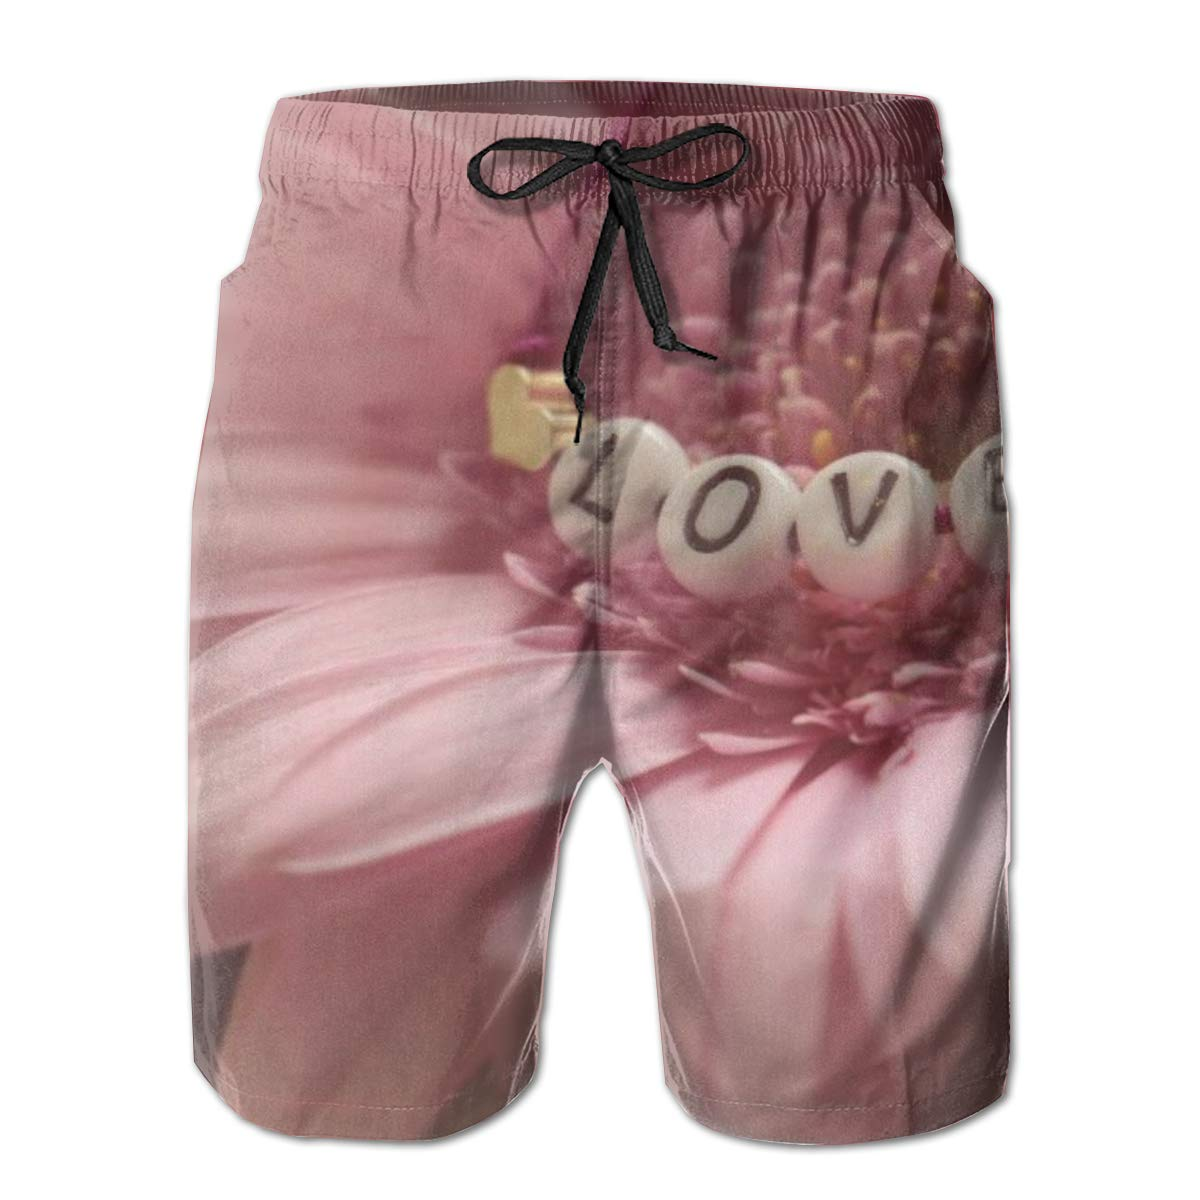 Leisue Pink Petals Love Closeup Quick Dry Elastic Lace Boardshorts Beach Shorts Pants Swim Trunks Mens Swimsuit with Pockets